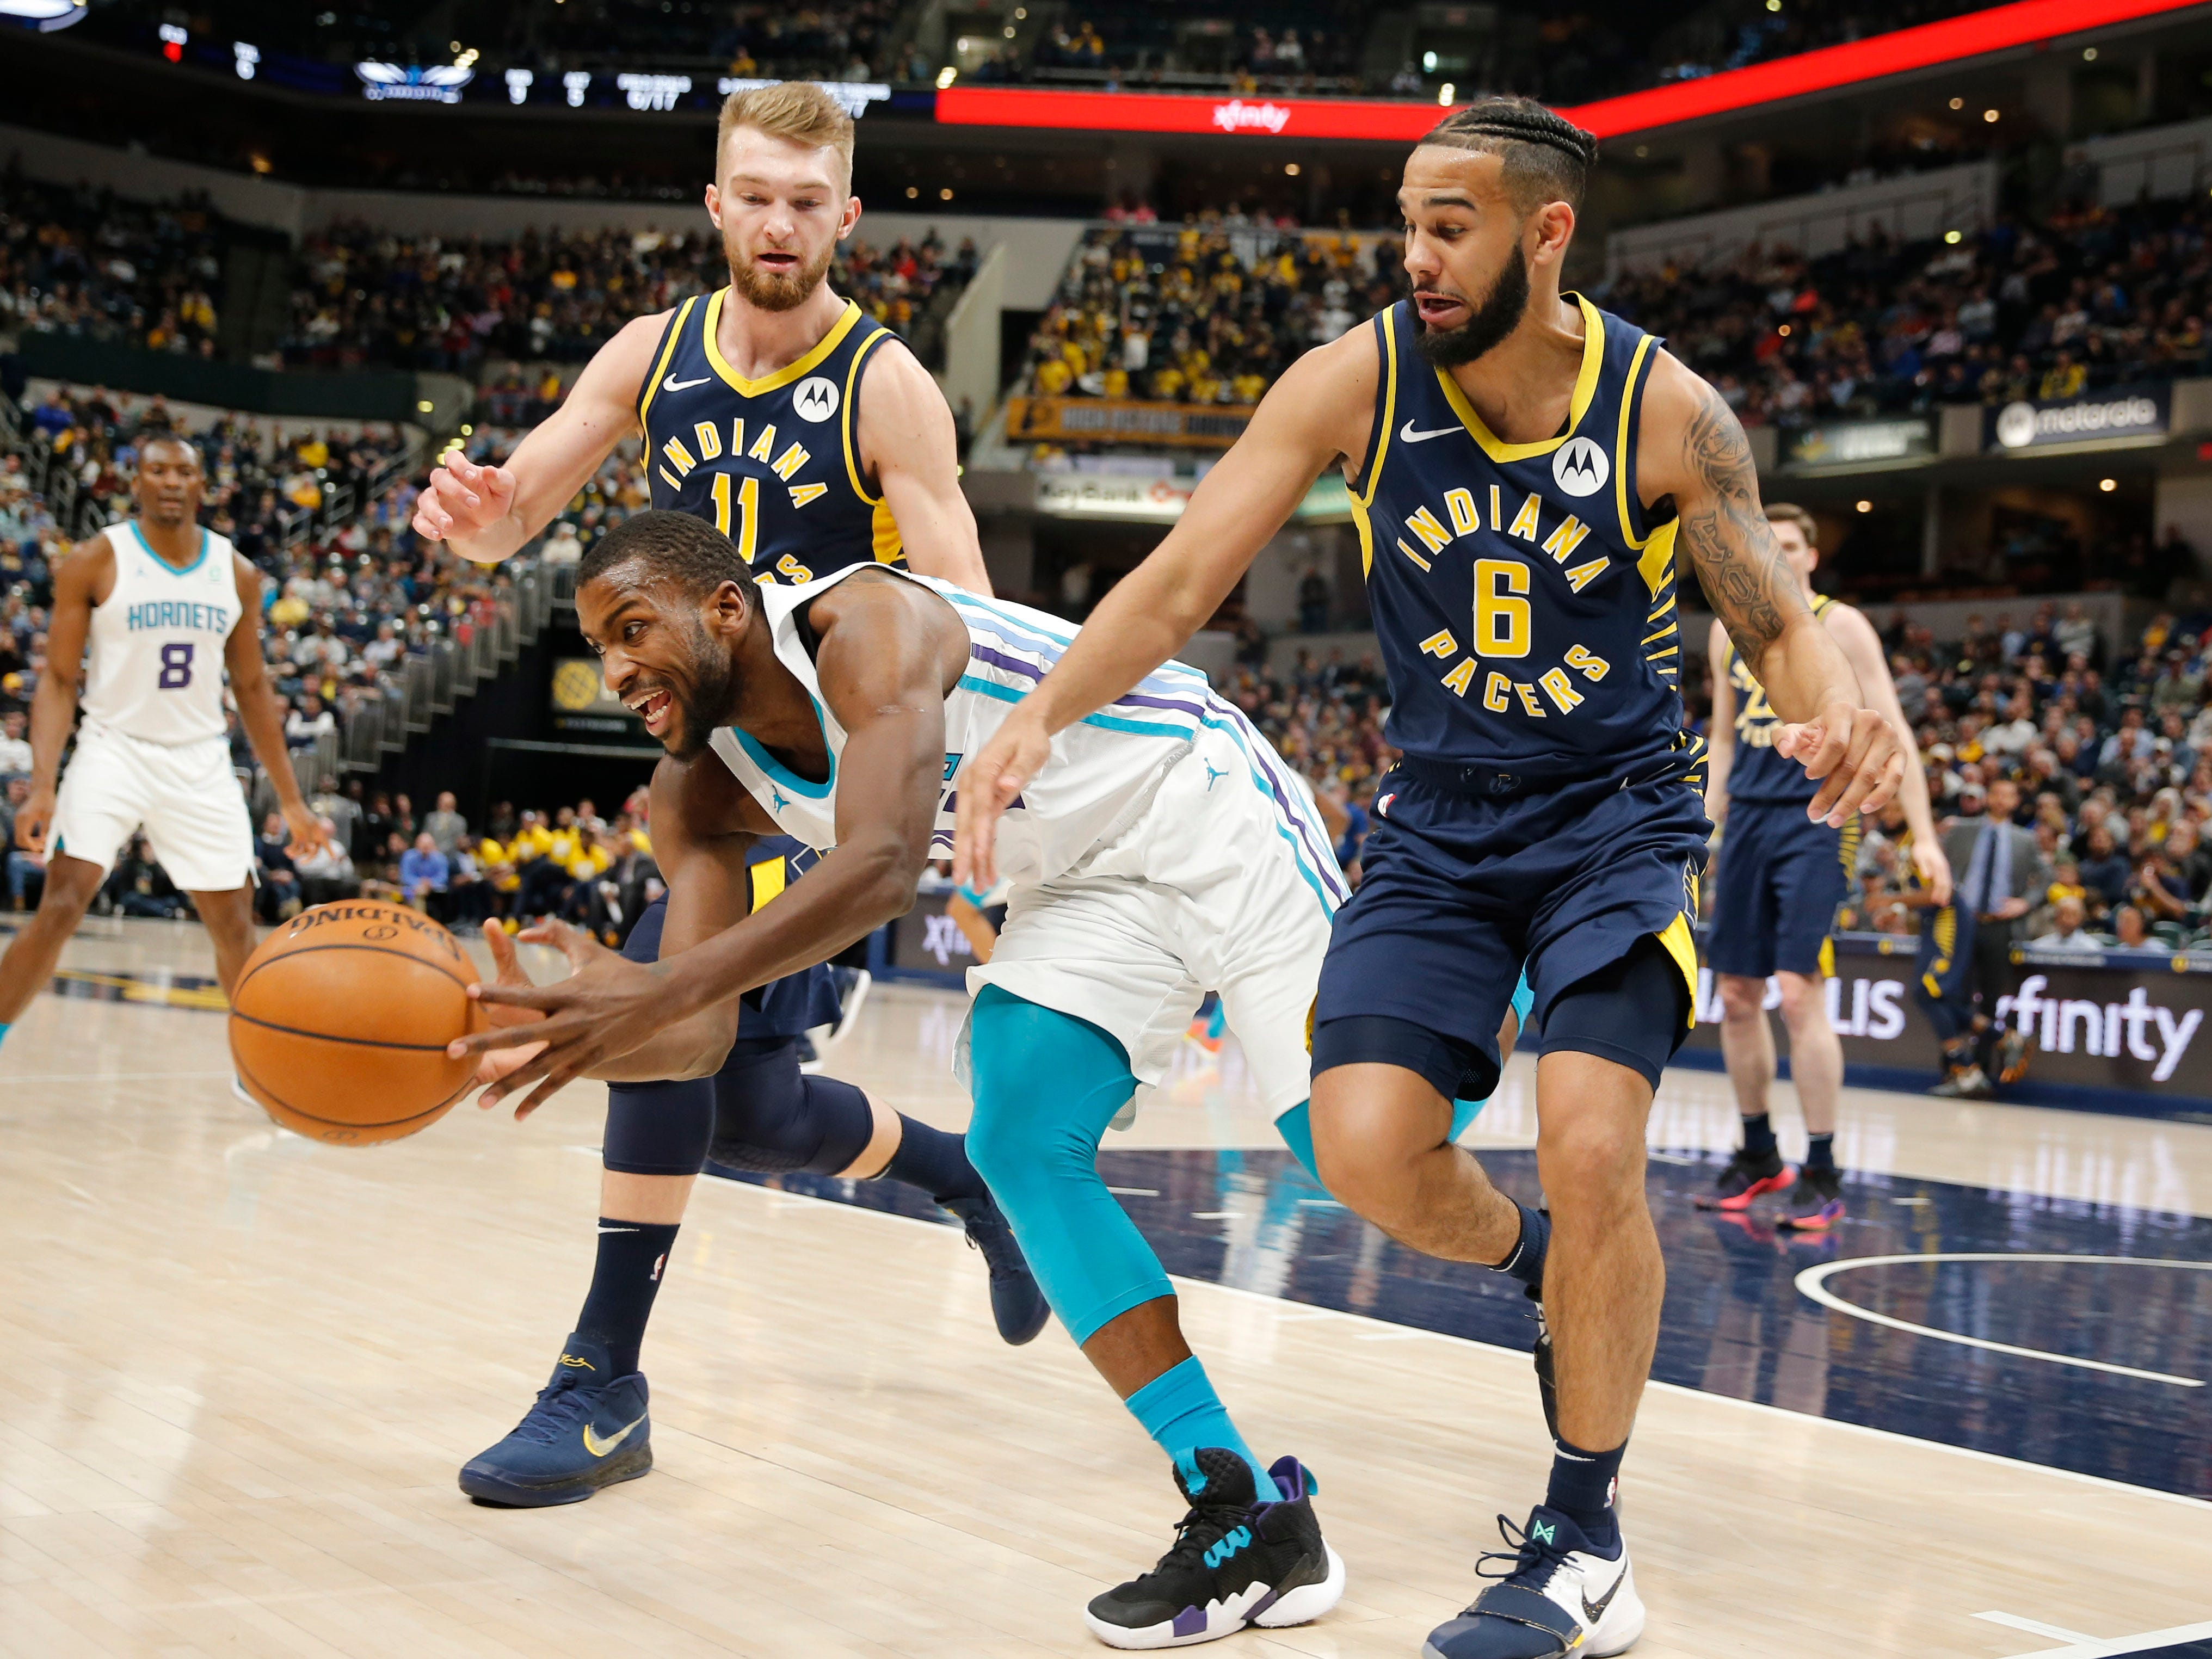 Feb 11, 2019; Indianapolis, IN, USA; Charlotte Hornets forward Michael Kidd-Gilchrist (14) chases after a loose ball against Indiana Pacers guard Cory Joseph (6) and forward Domantas Sabonis (11) during the first quarter at Bankers Life Fieldhouse.